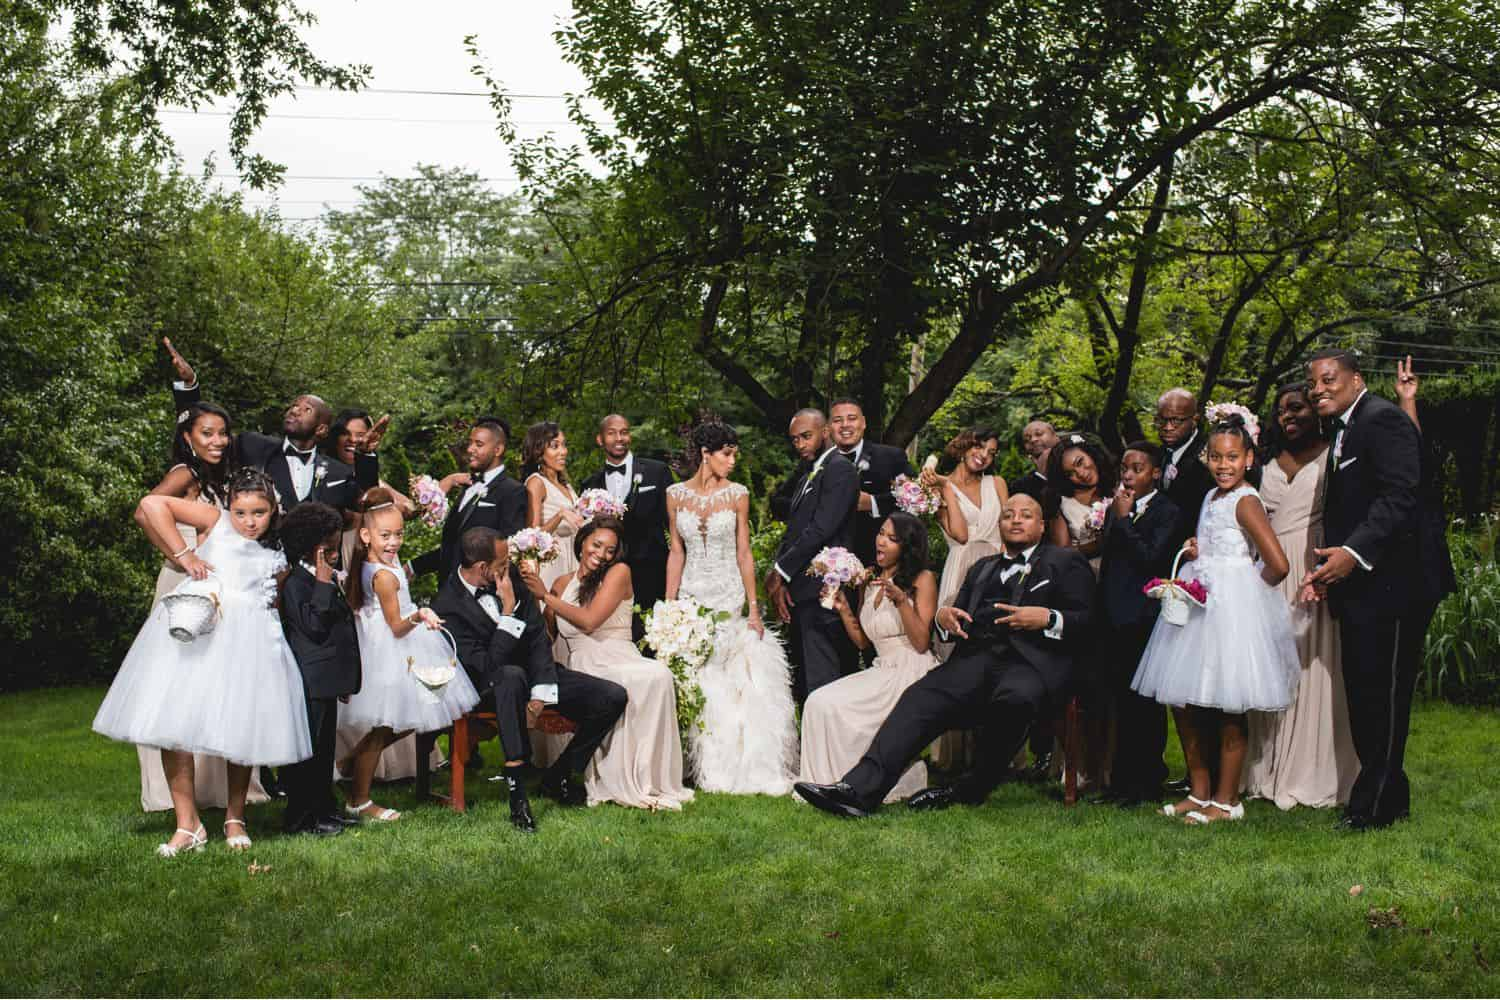 A fun outdoor family wedding photo with a large group